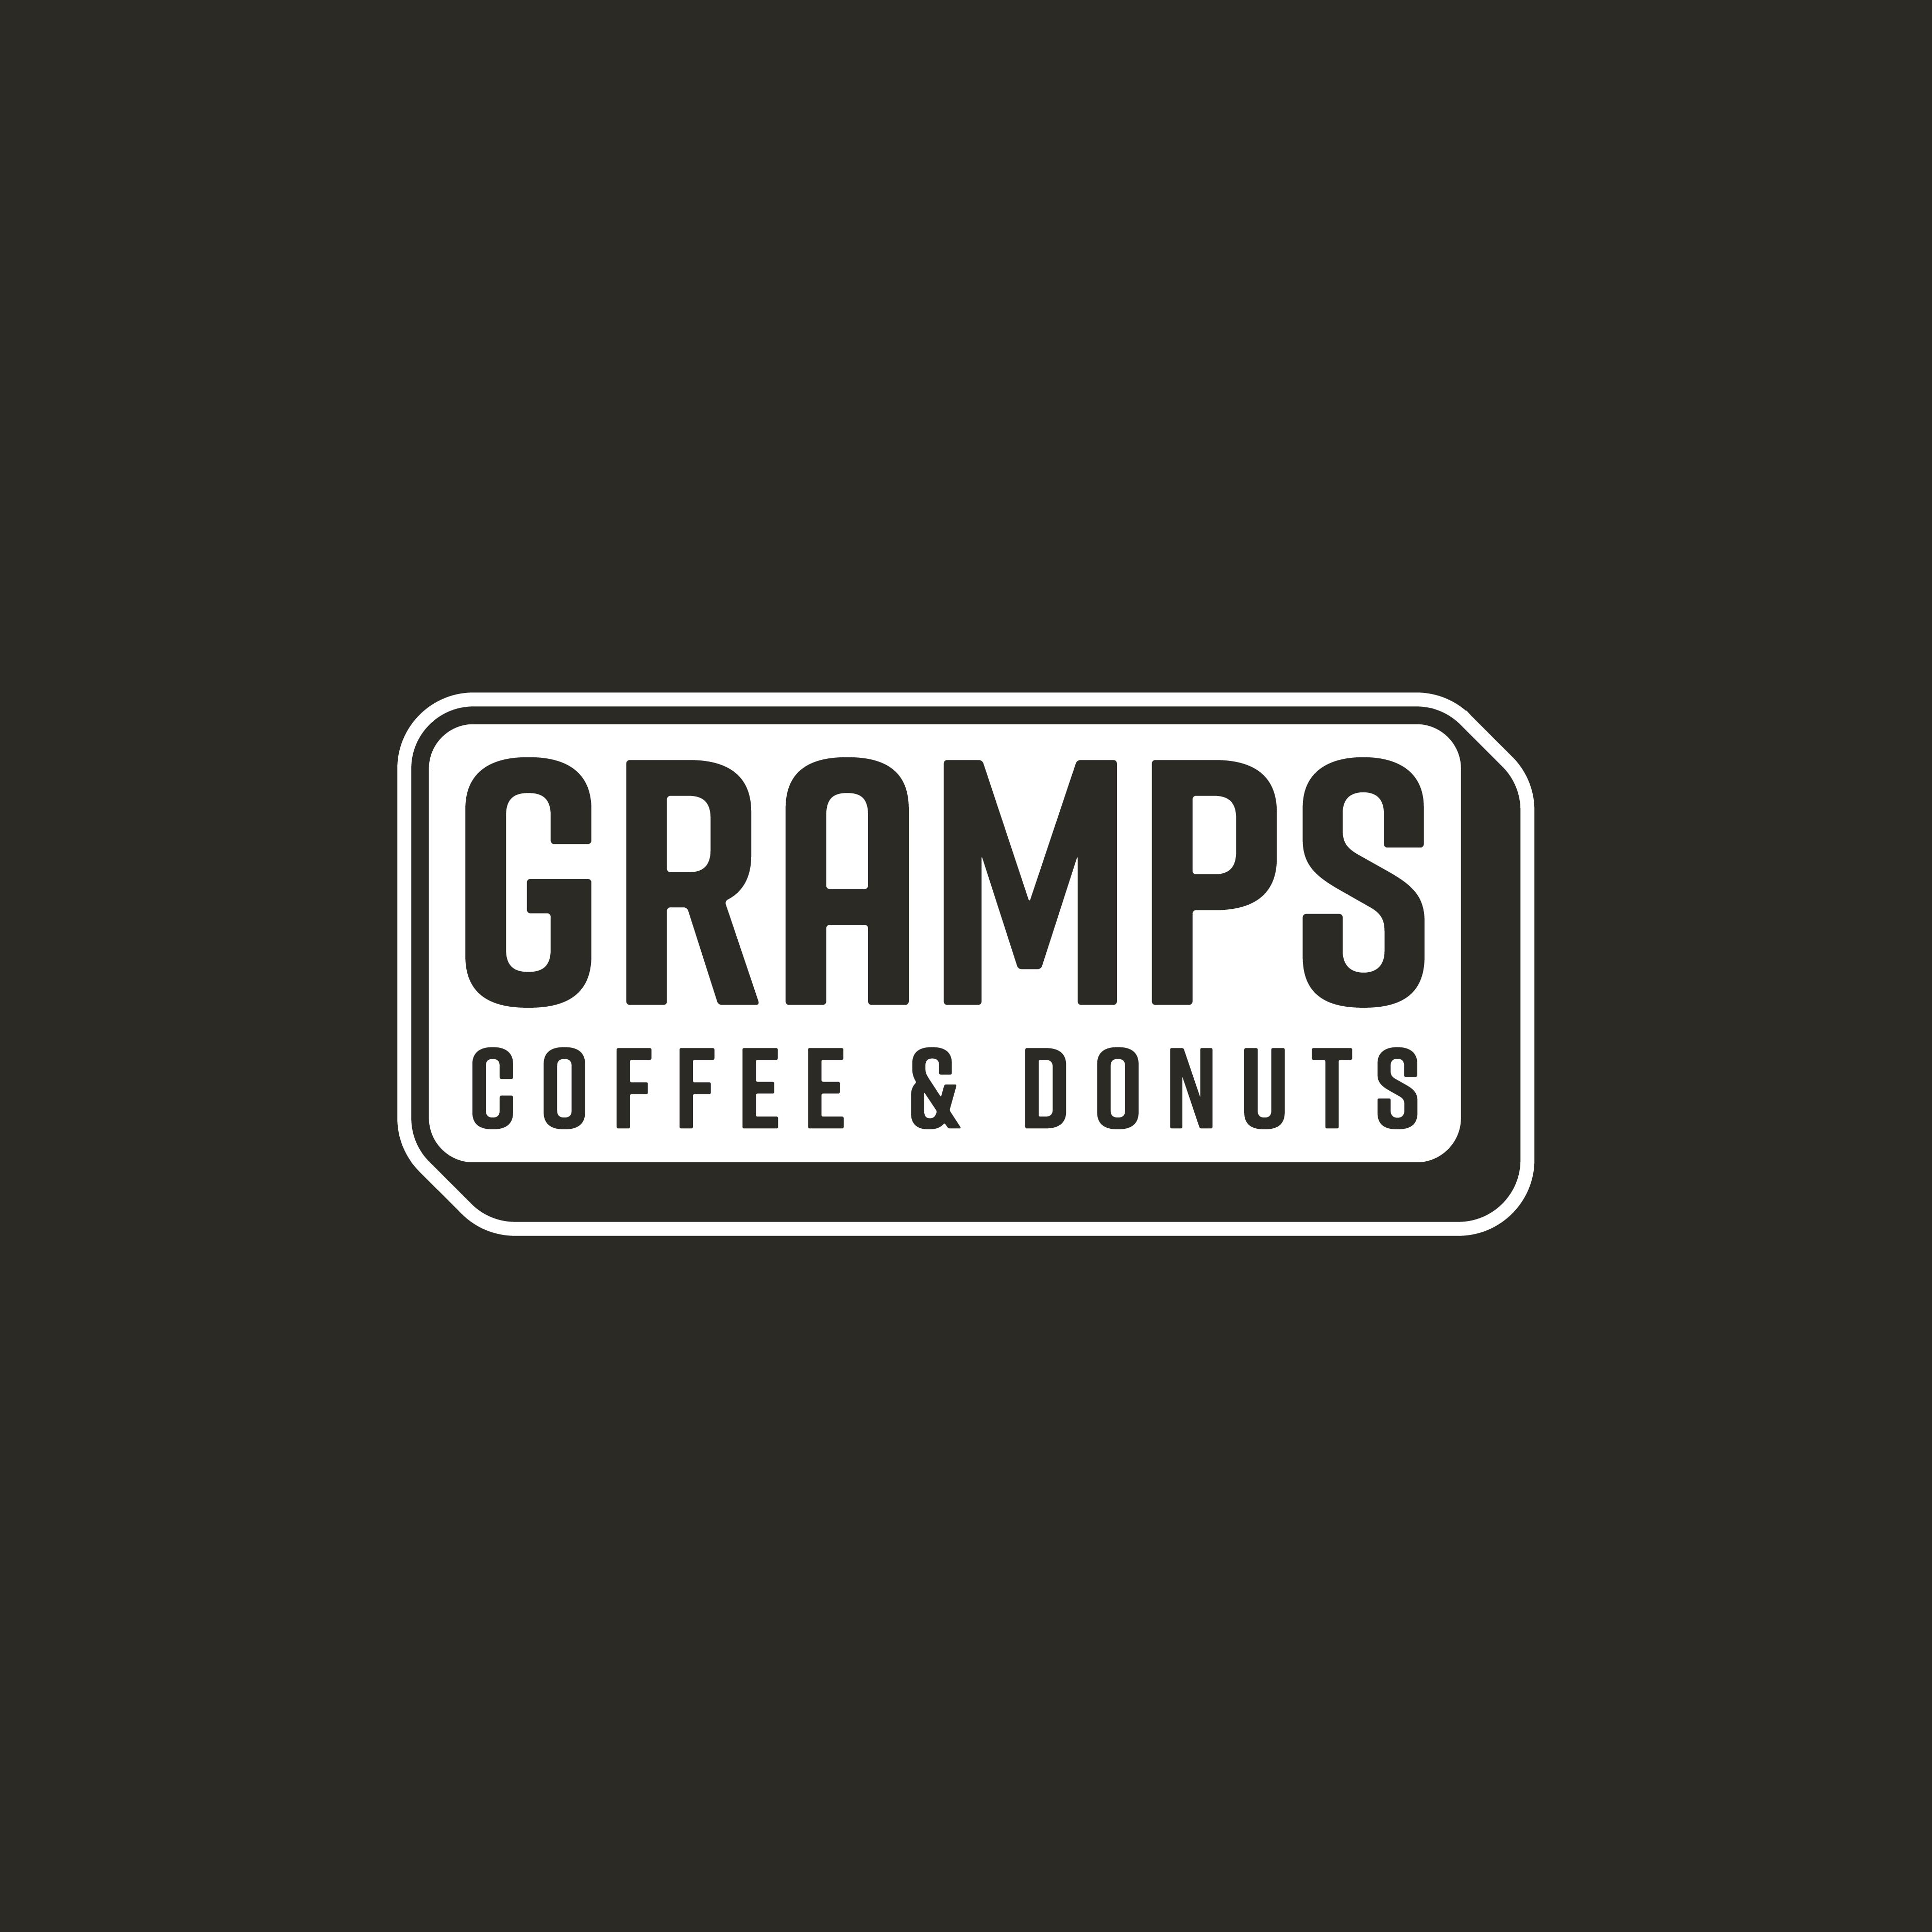 Gramps Sign/Wordmark (Black Background)